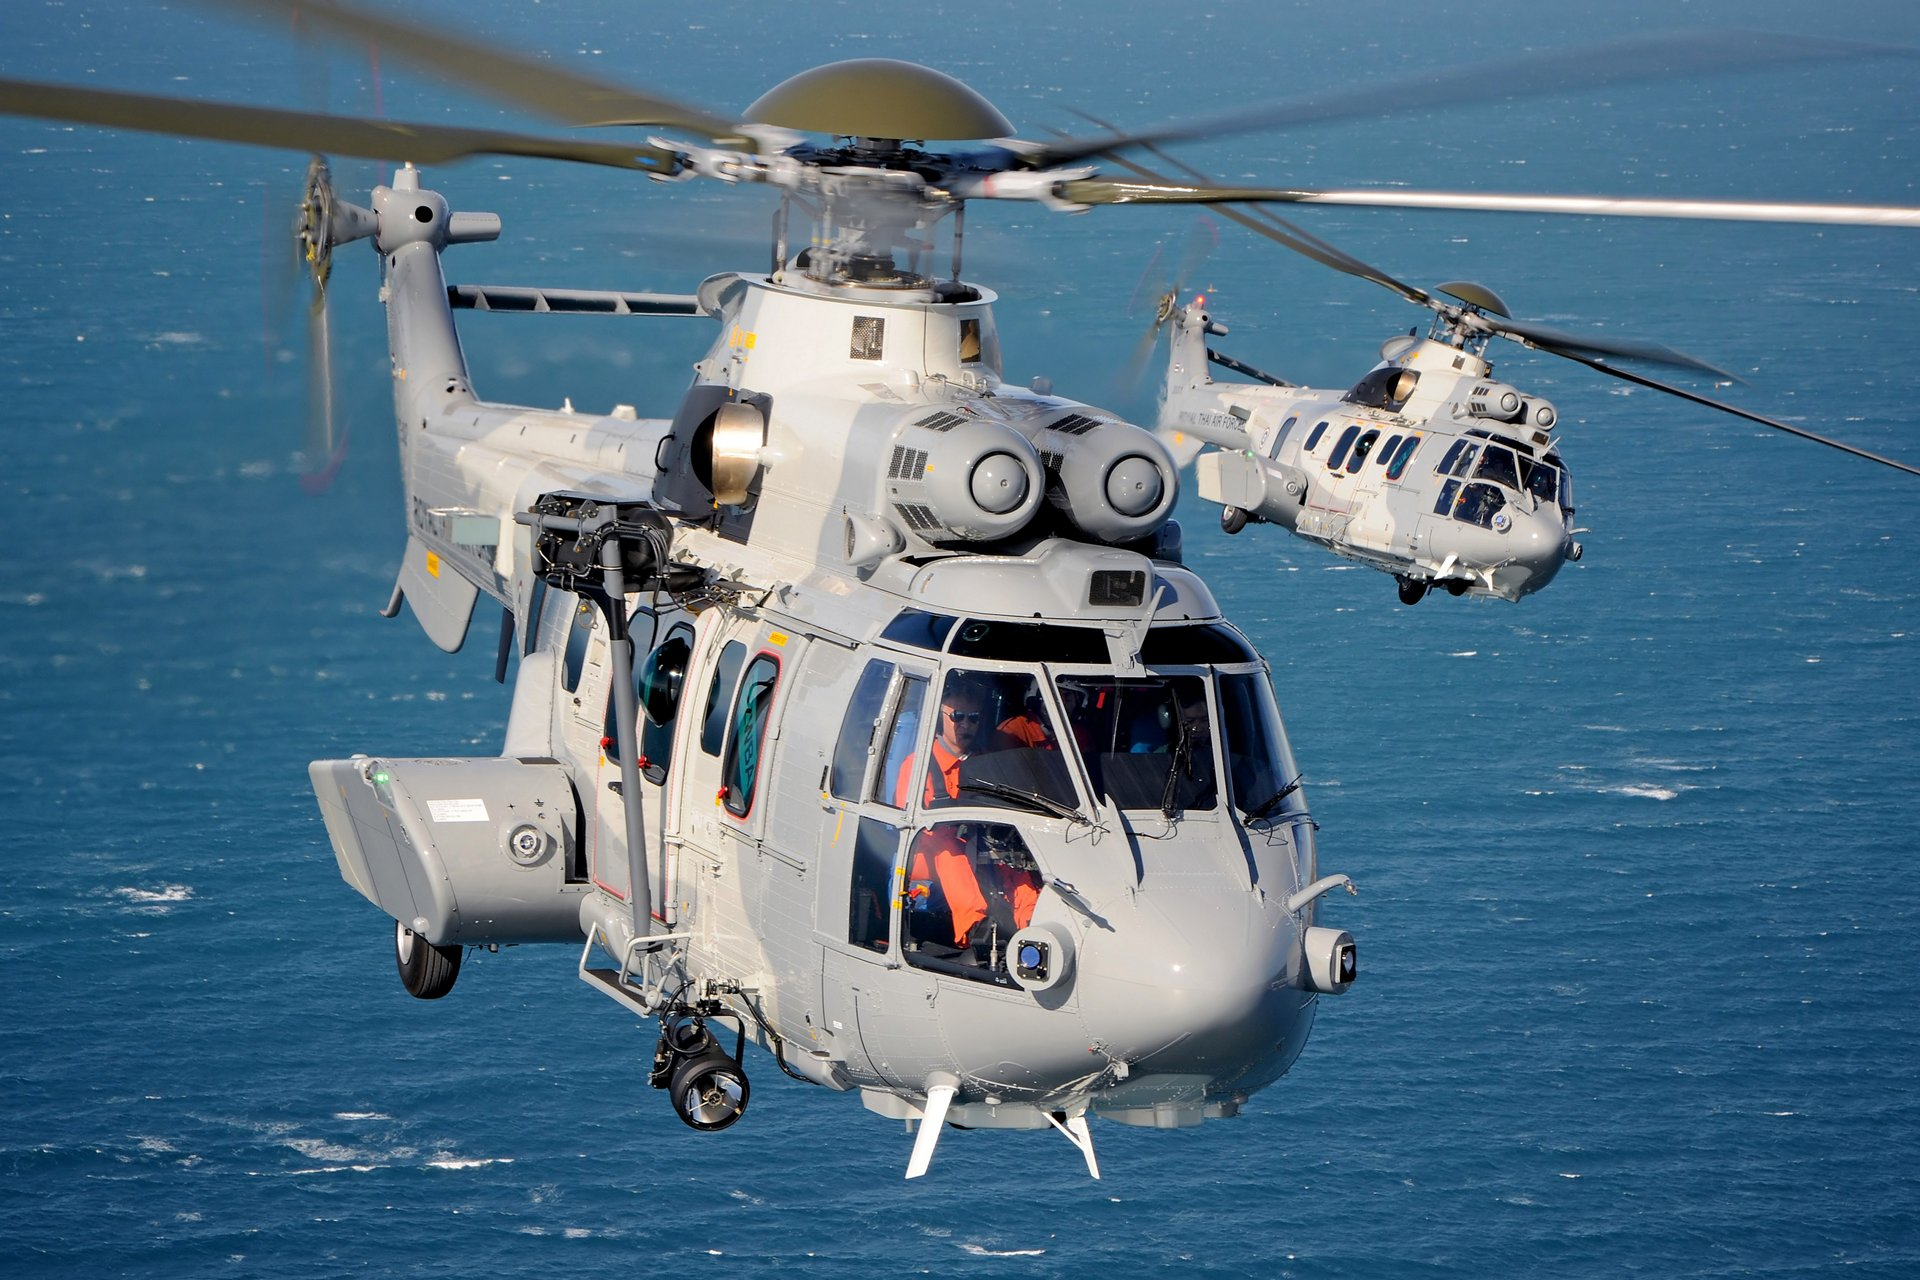 The Royal Thai Air Force (RTAF) has ordered two additional mission-ready twin-engine EC725 (now marketed as the H225M Caracal) multirole utility helicopters